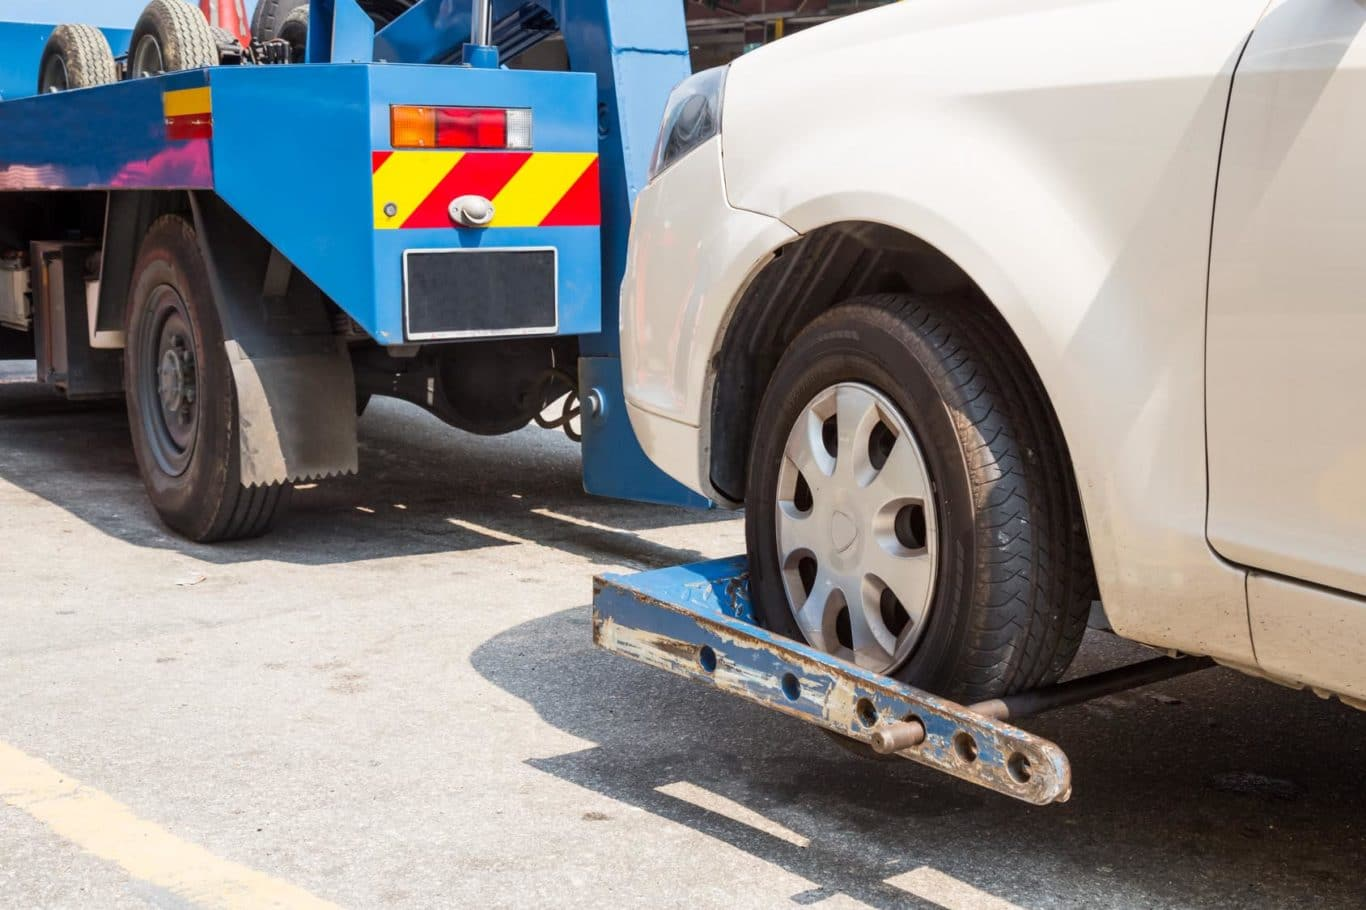 Killiney expert Roadside Assistance services